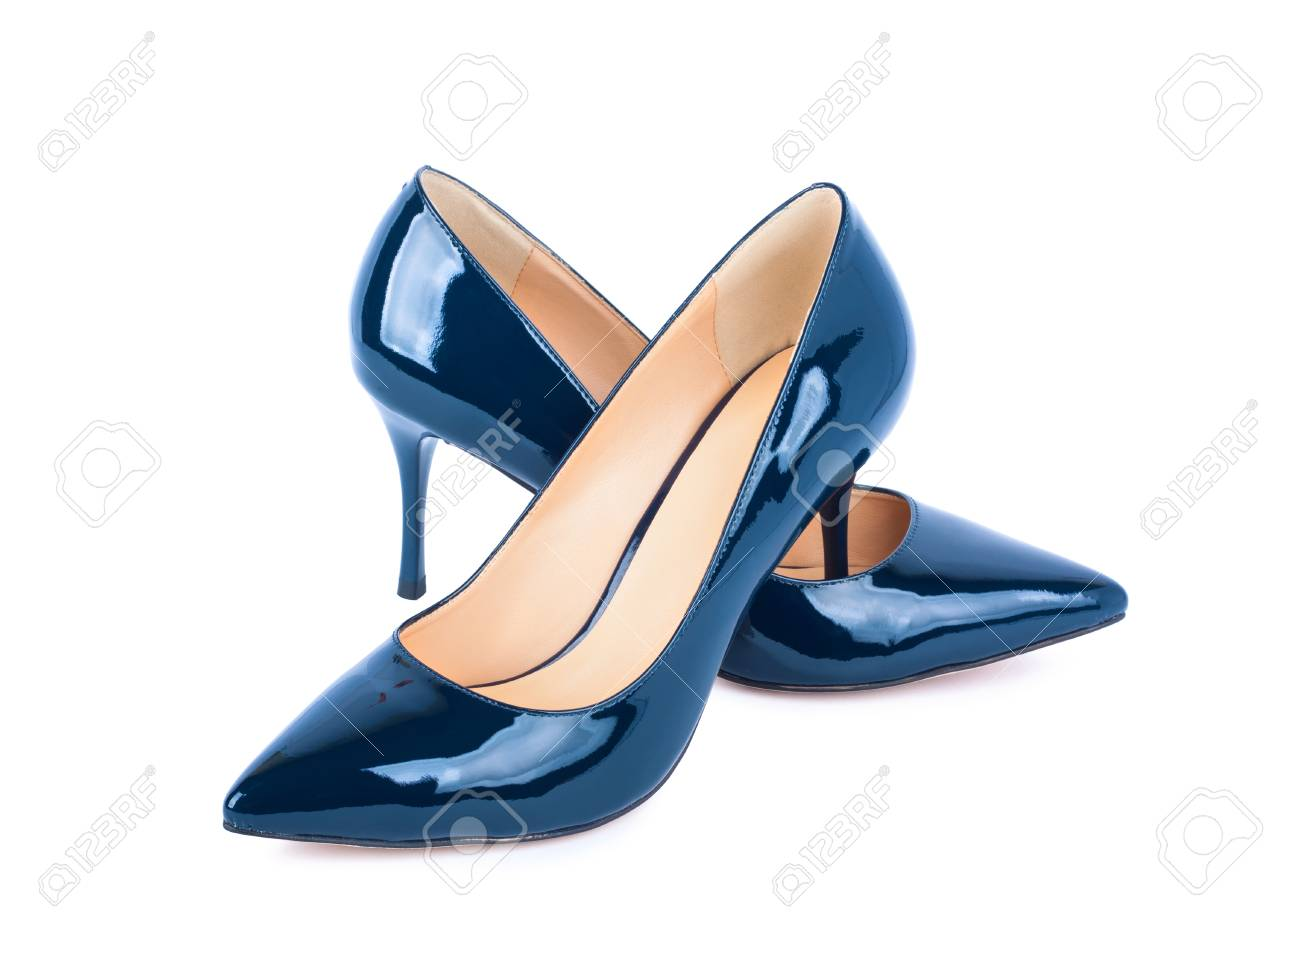 0ce3282e484 Beautiful blue classic women shoes isolated on white background